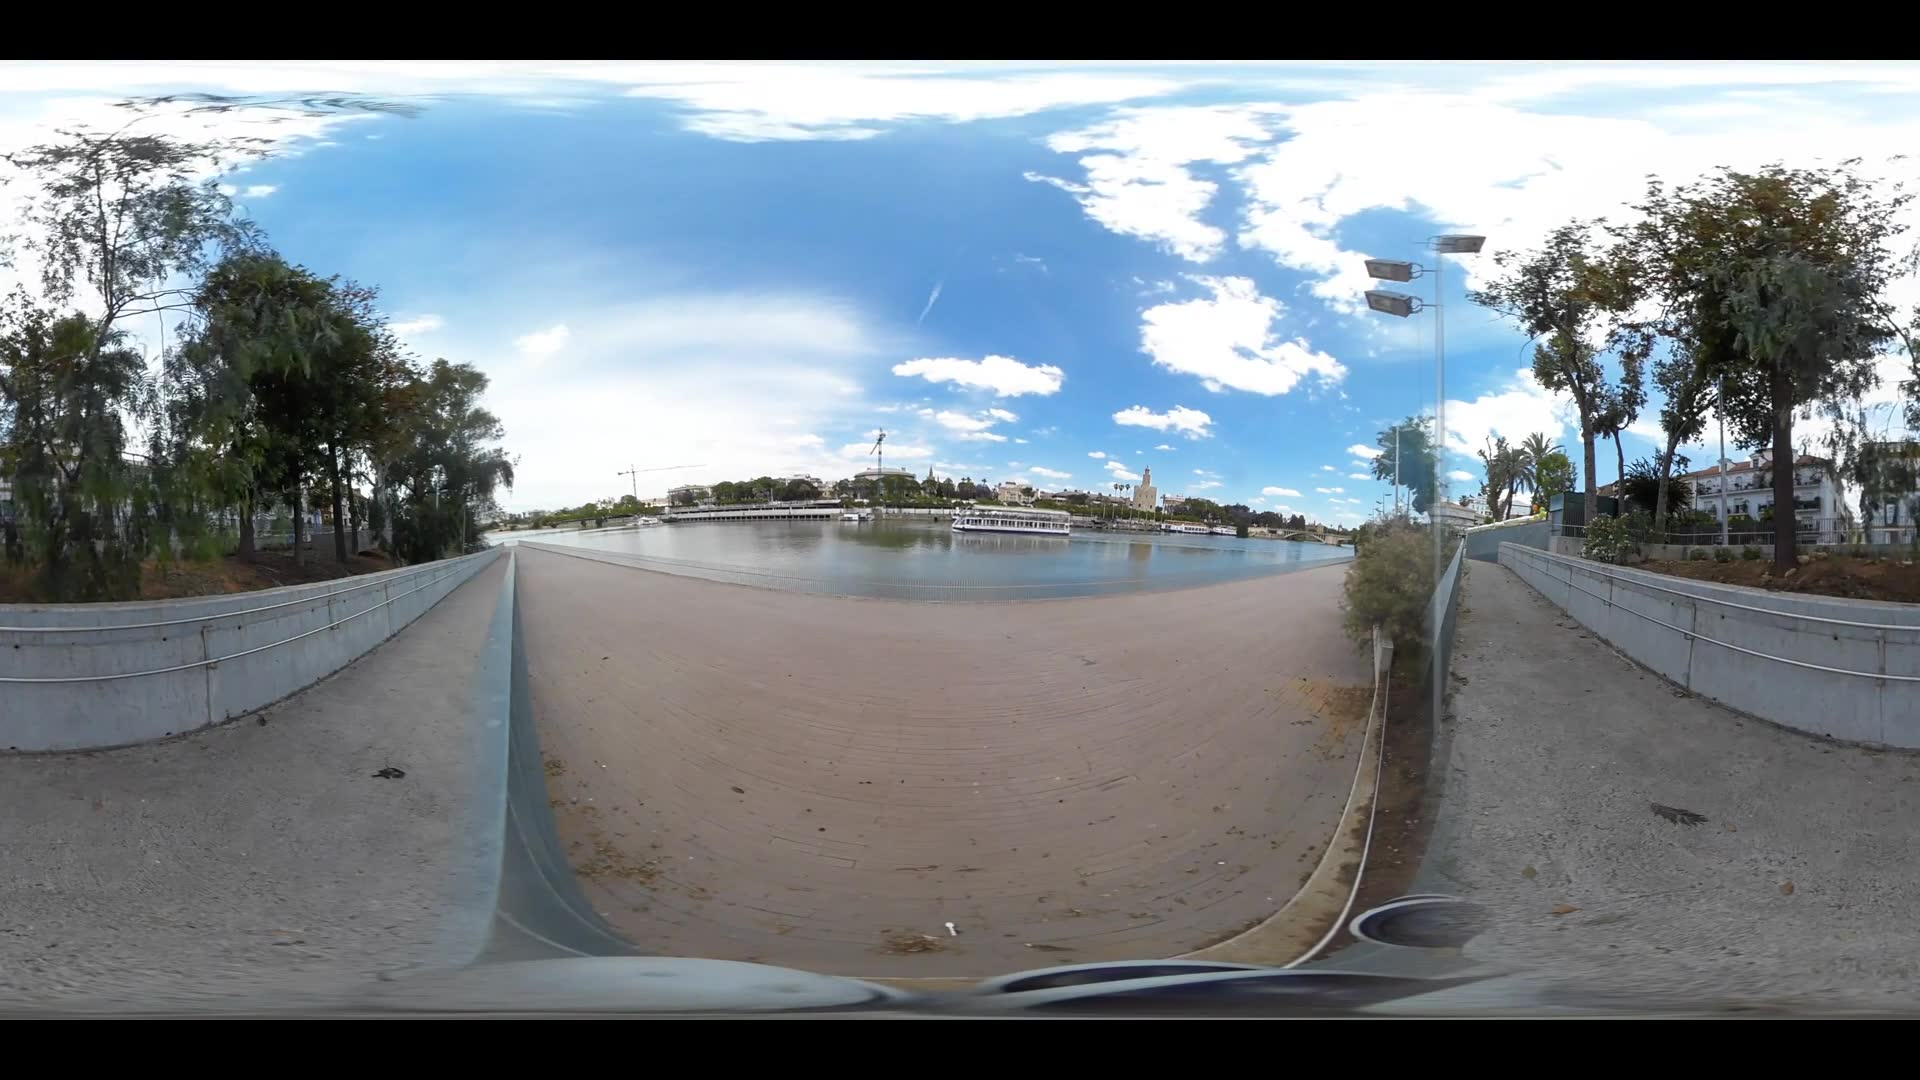 Virtual Reality 360 view from the Canal de Alfonso XIII with the Torre del Oro in Seville Spain